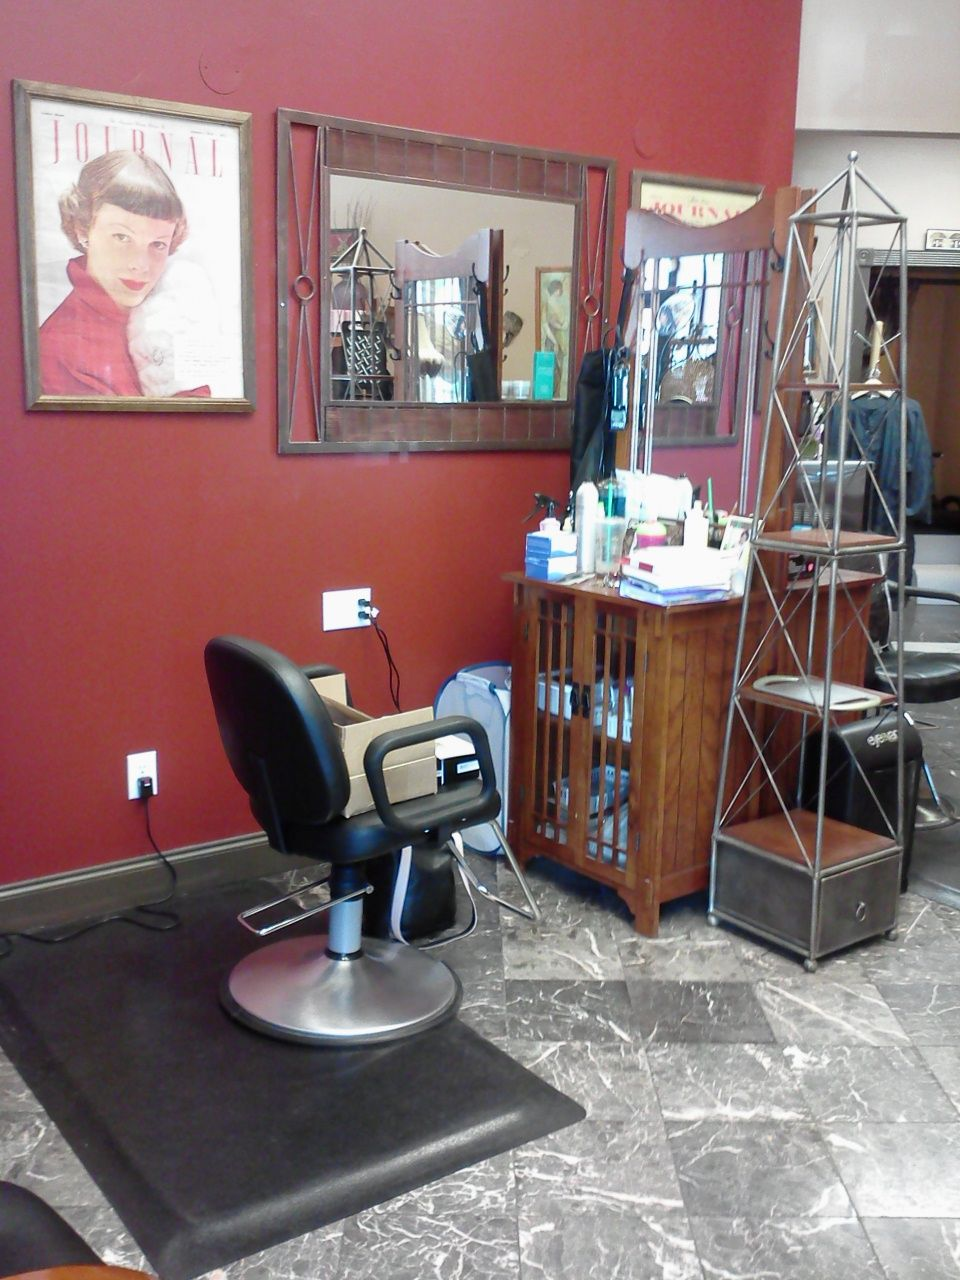 Mention Snobs And Get A Free Haircut With Any Color Service From